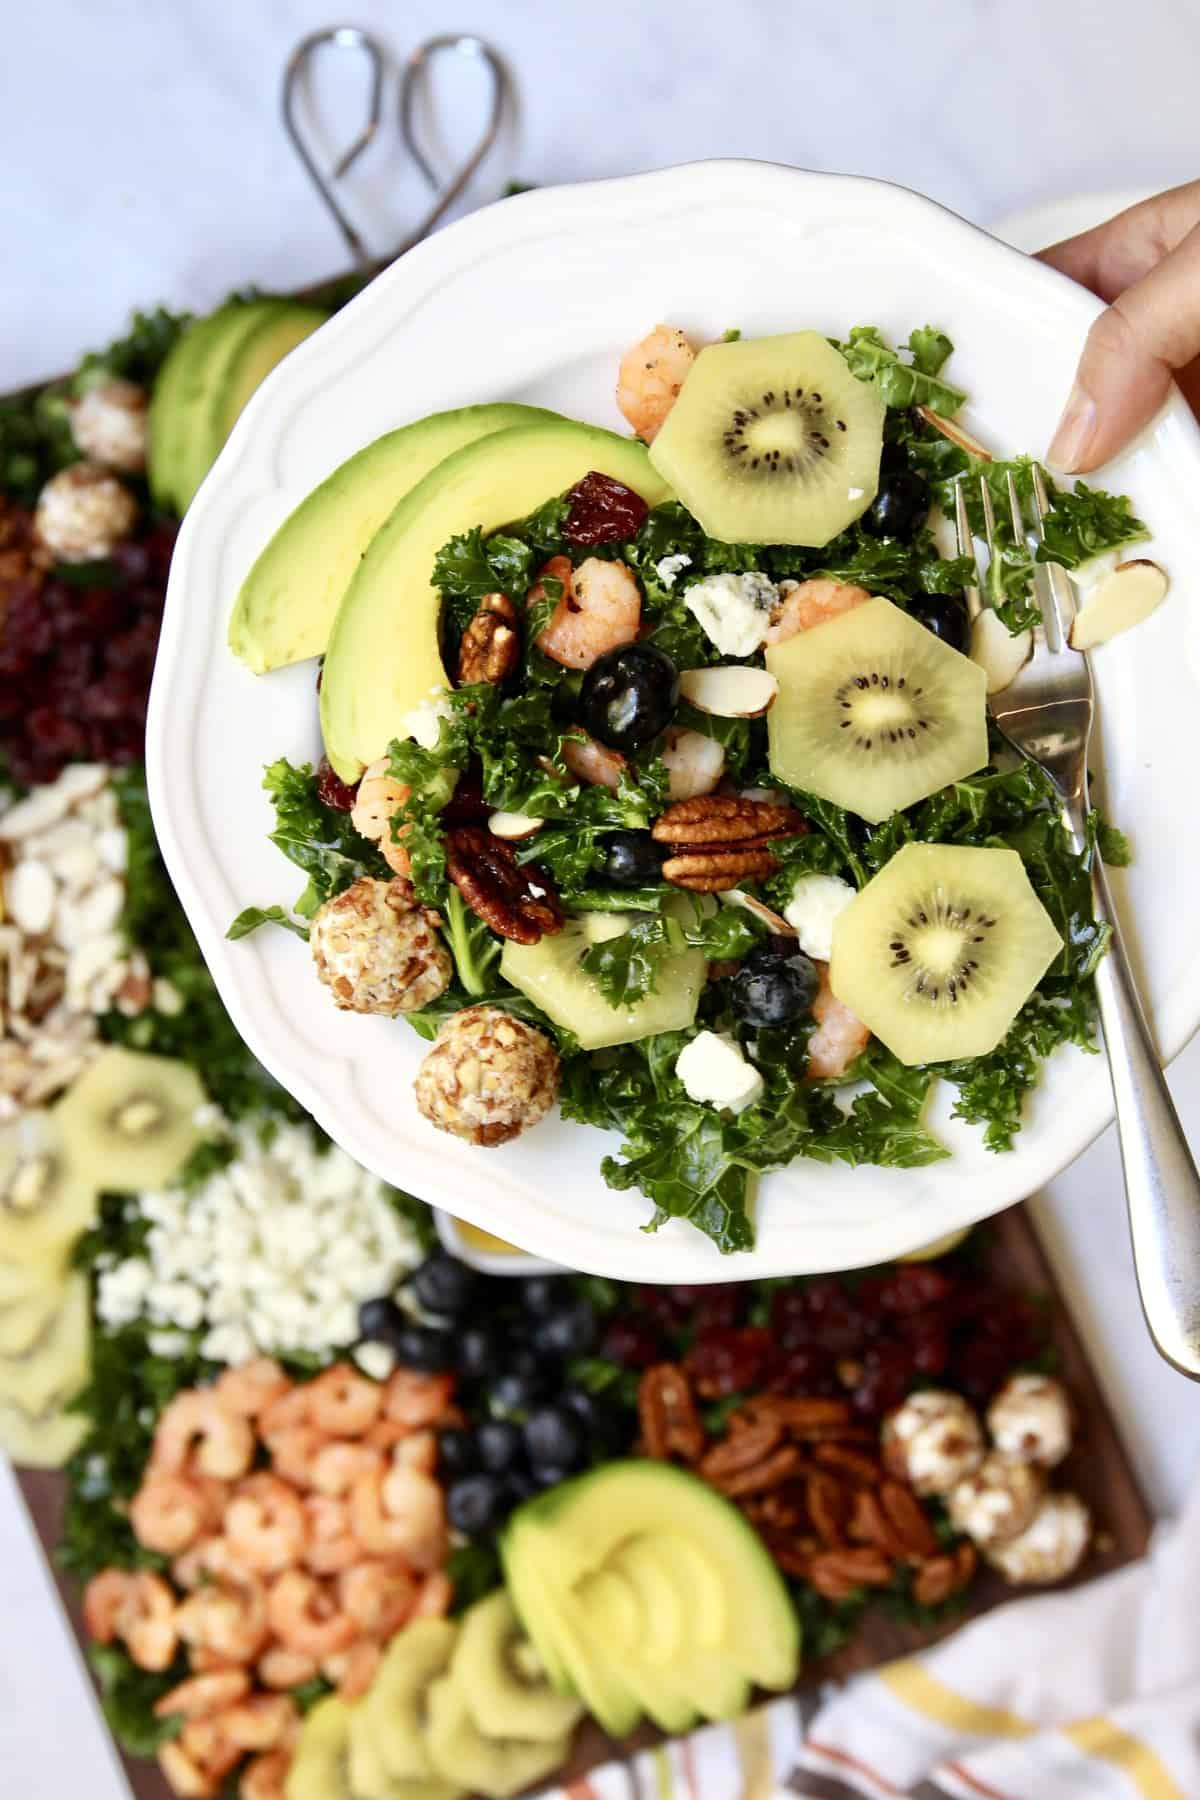 Kale + SunGold Kiwi Salad Board by The BakerMama